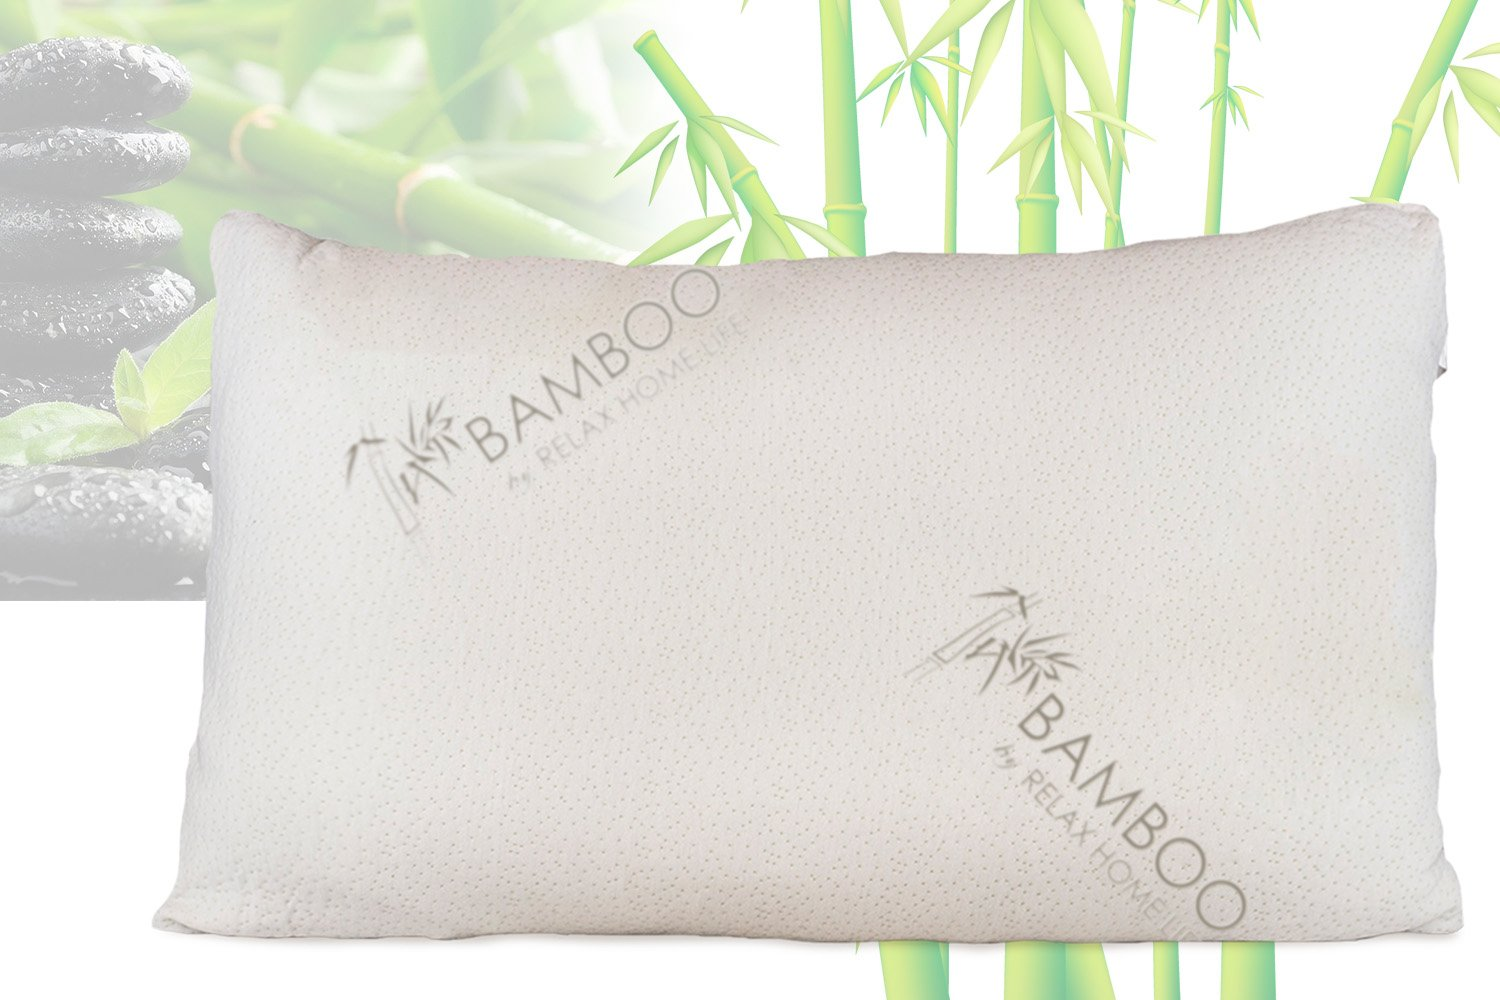 Bamboo By Relax Home Life - Bamboo Pillow With Shredded Memory Foam and Stay Cool Cover (King)